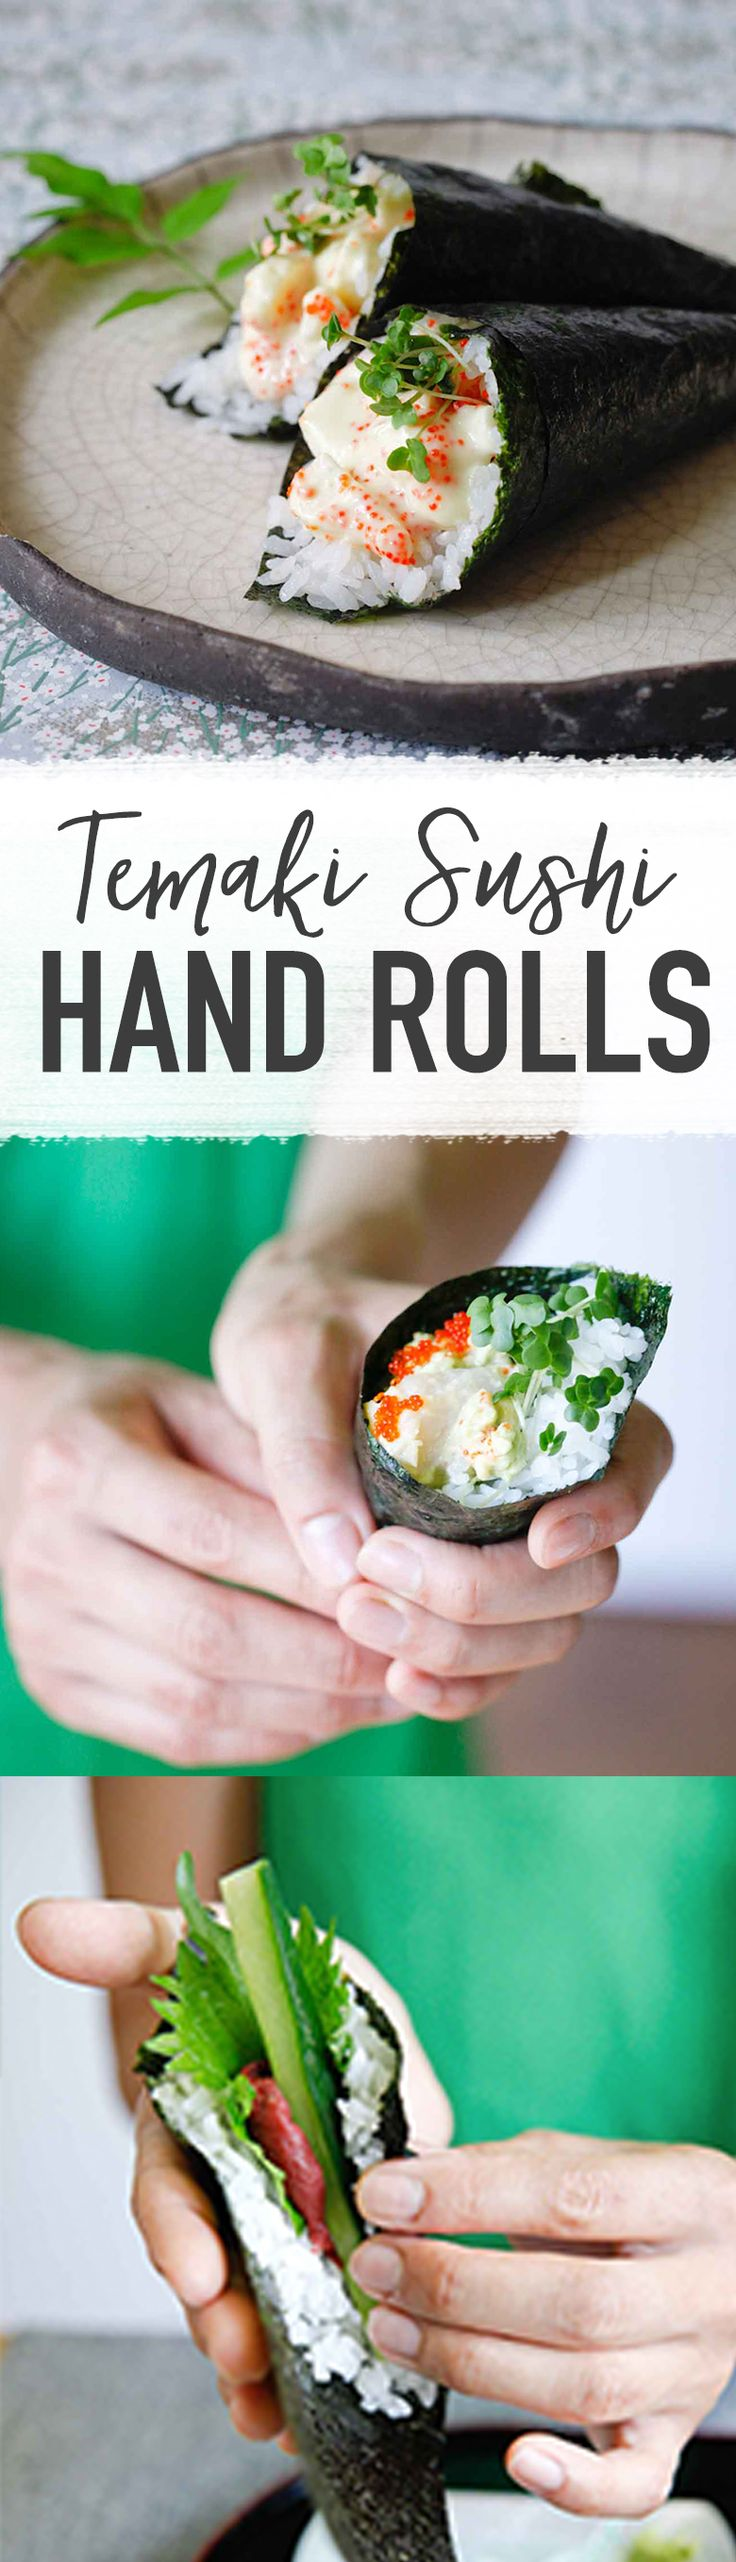 "Temaki Sushi Hand Rolls - From ""Sushi at Home"" by Yuki Gomi"